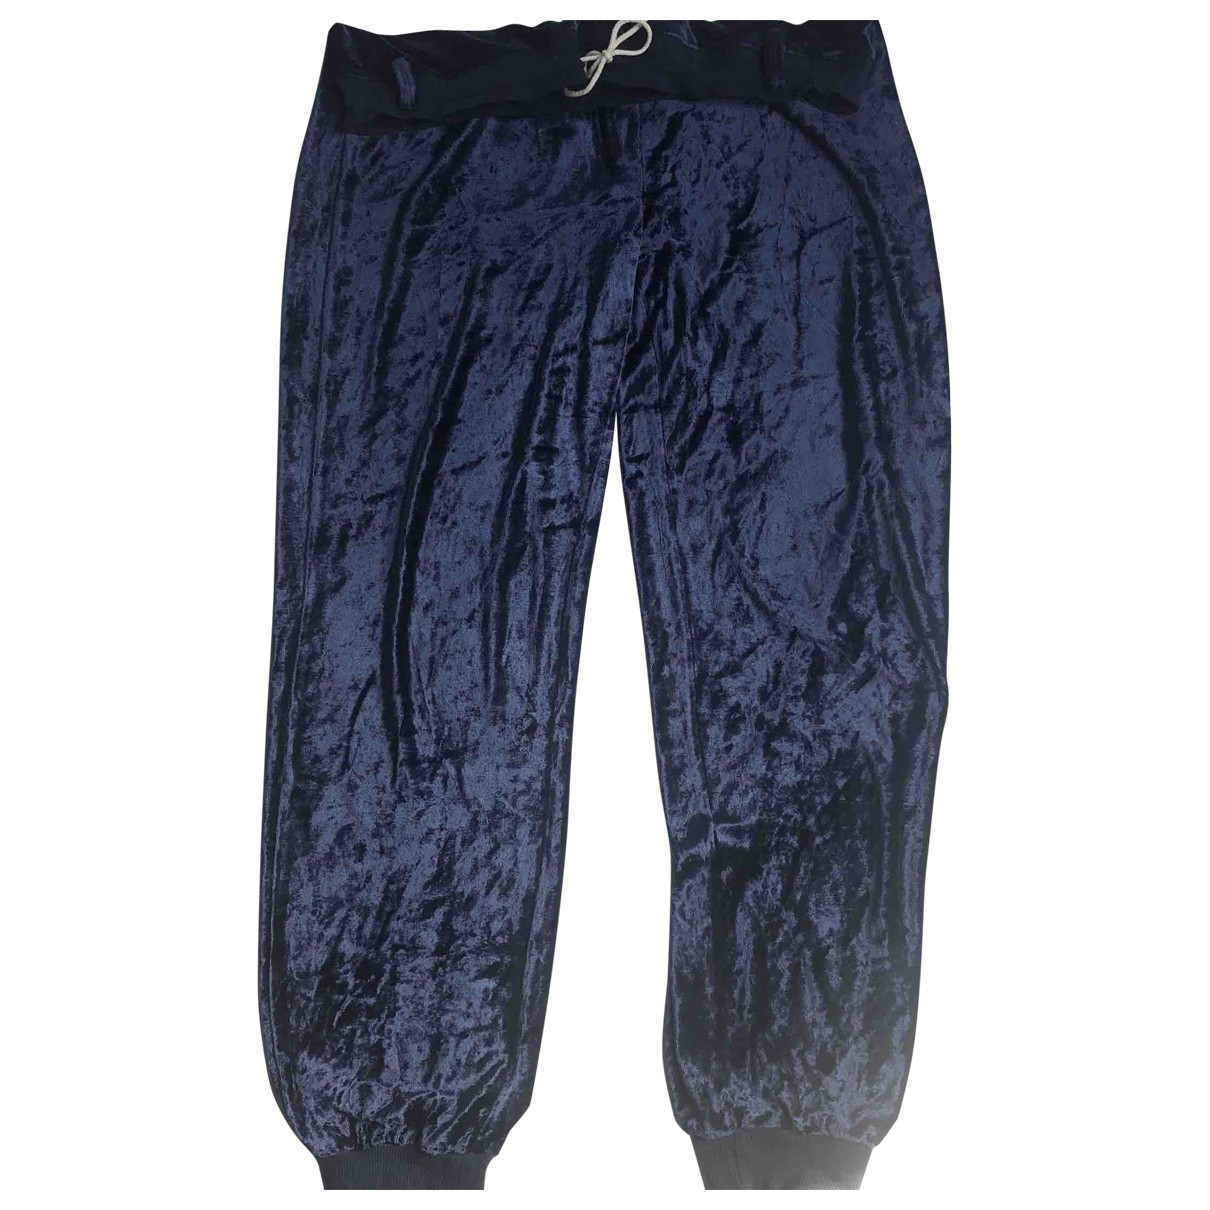 Mm6 \N Blue Velvet Trousers for Women 38 FR